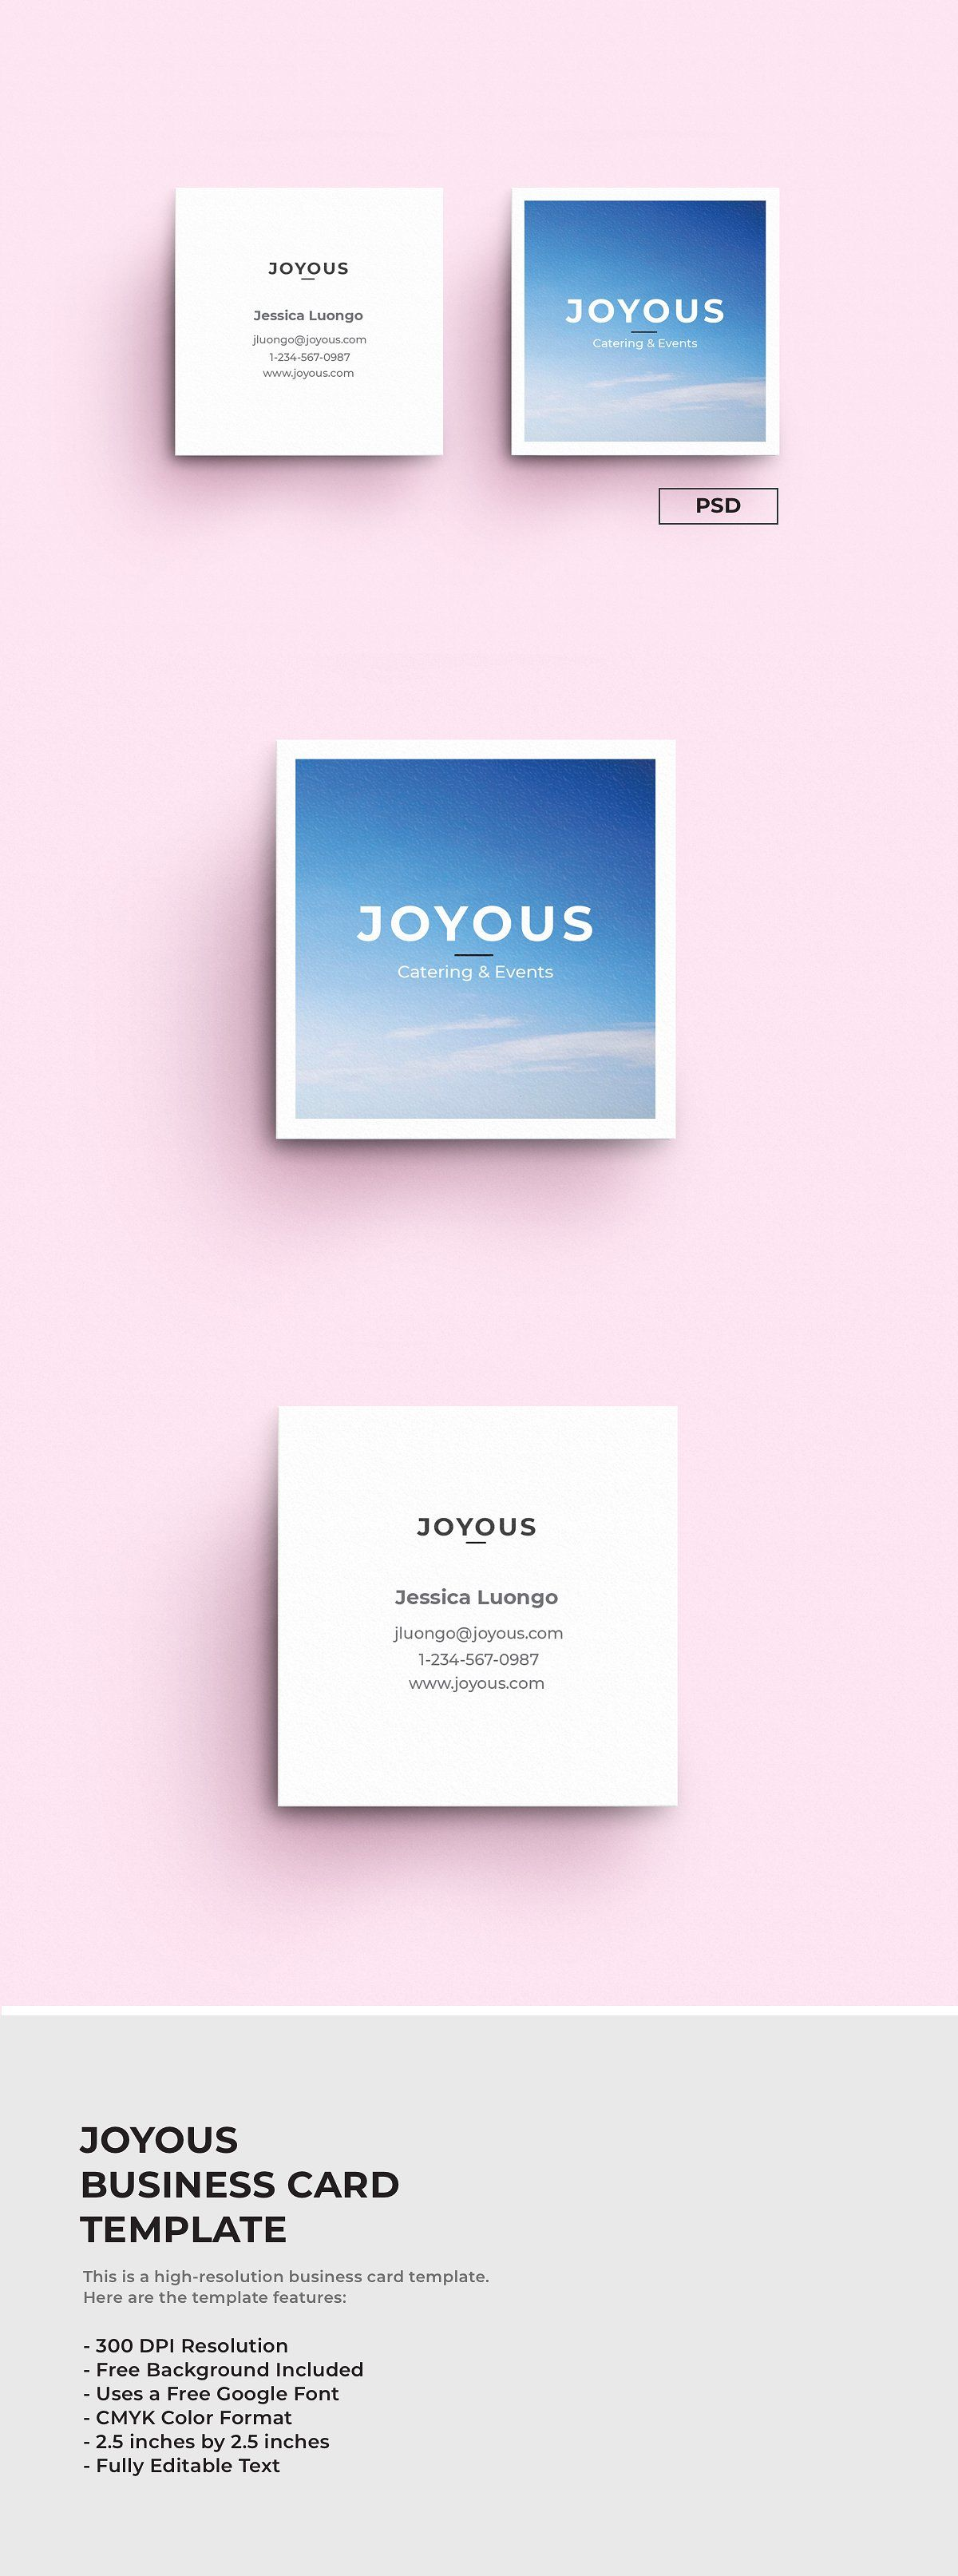 Joyous Business Card Template Business Card Template Business Card Template Design Business Cards Creative Templates